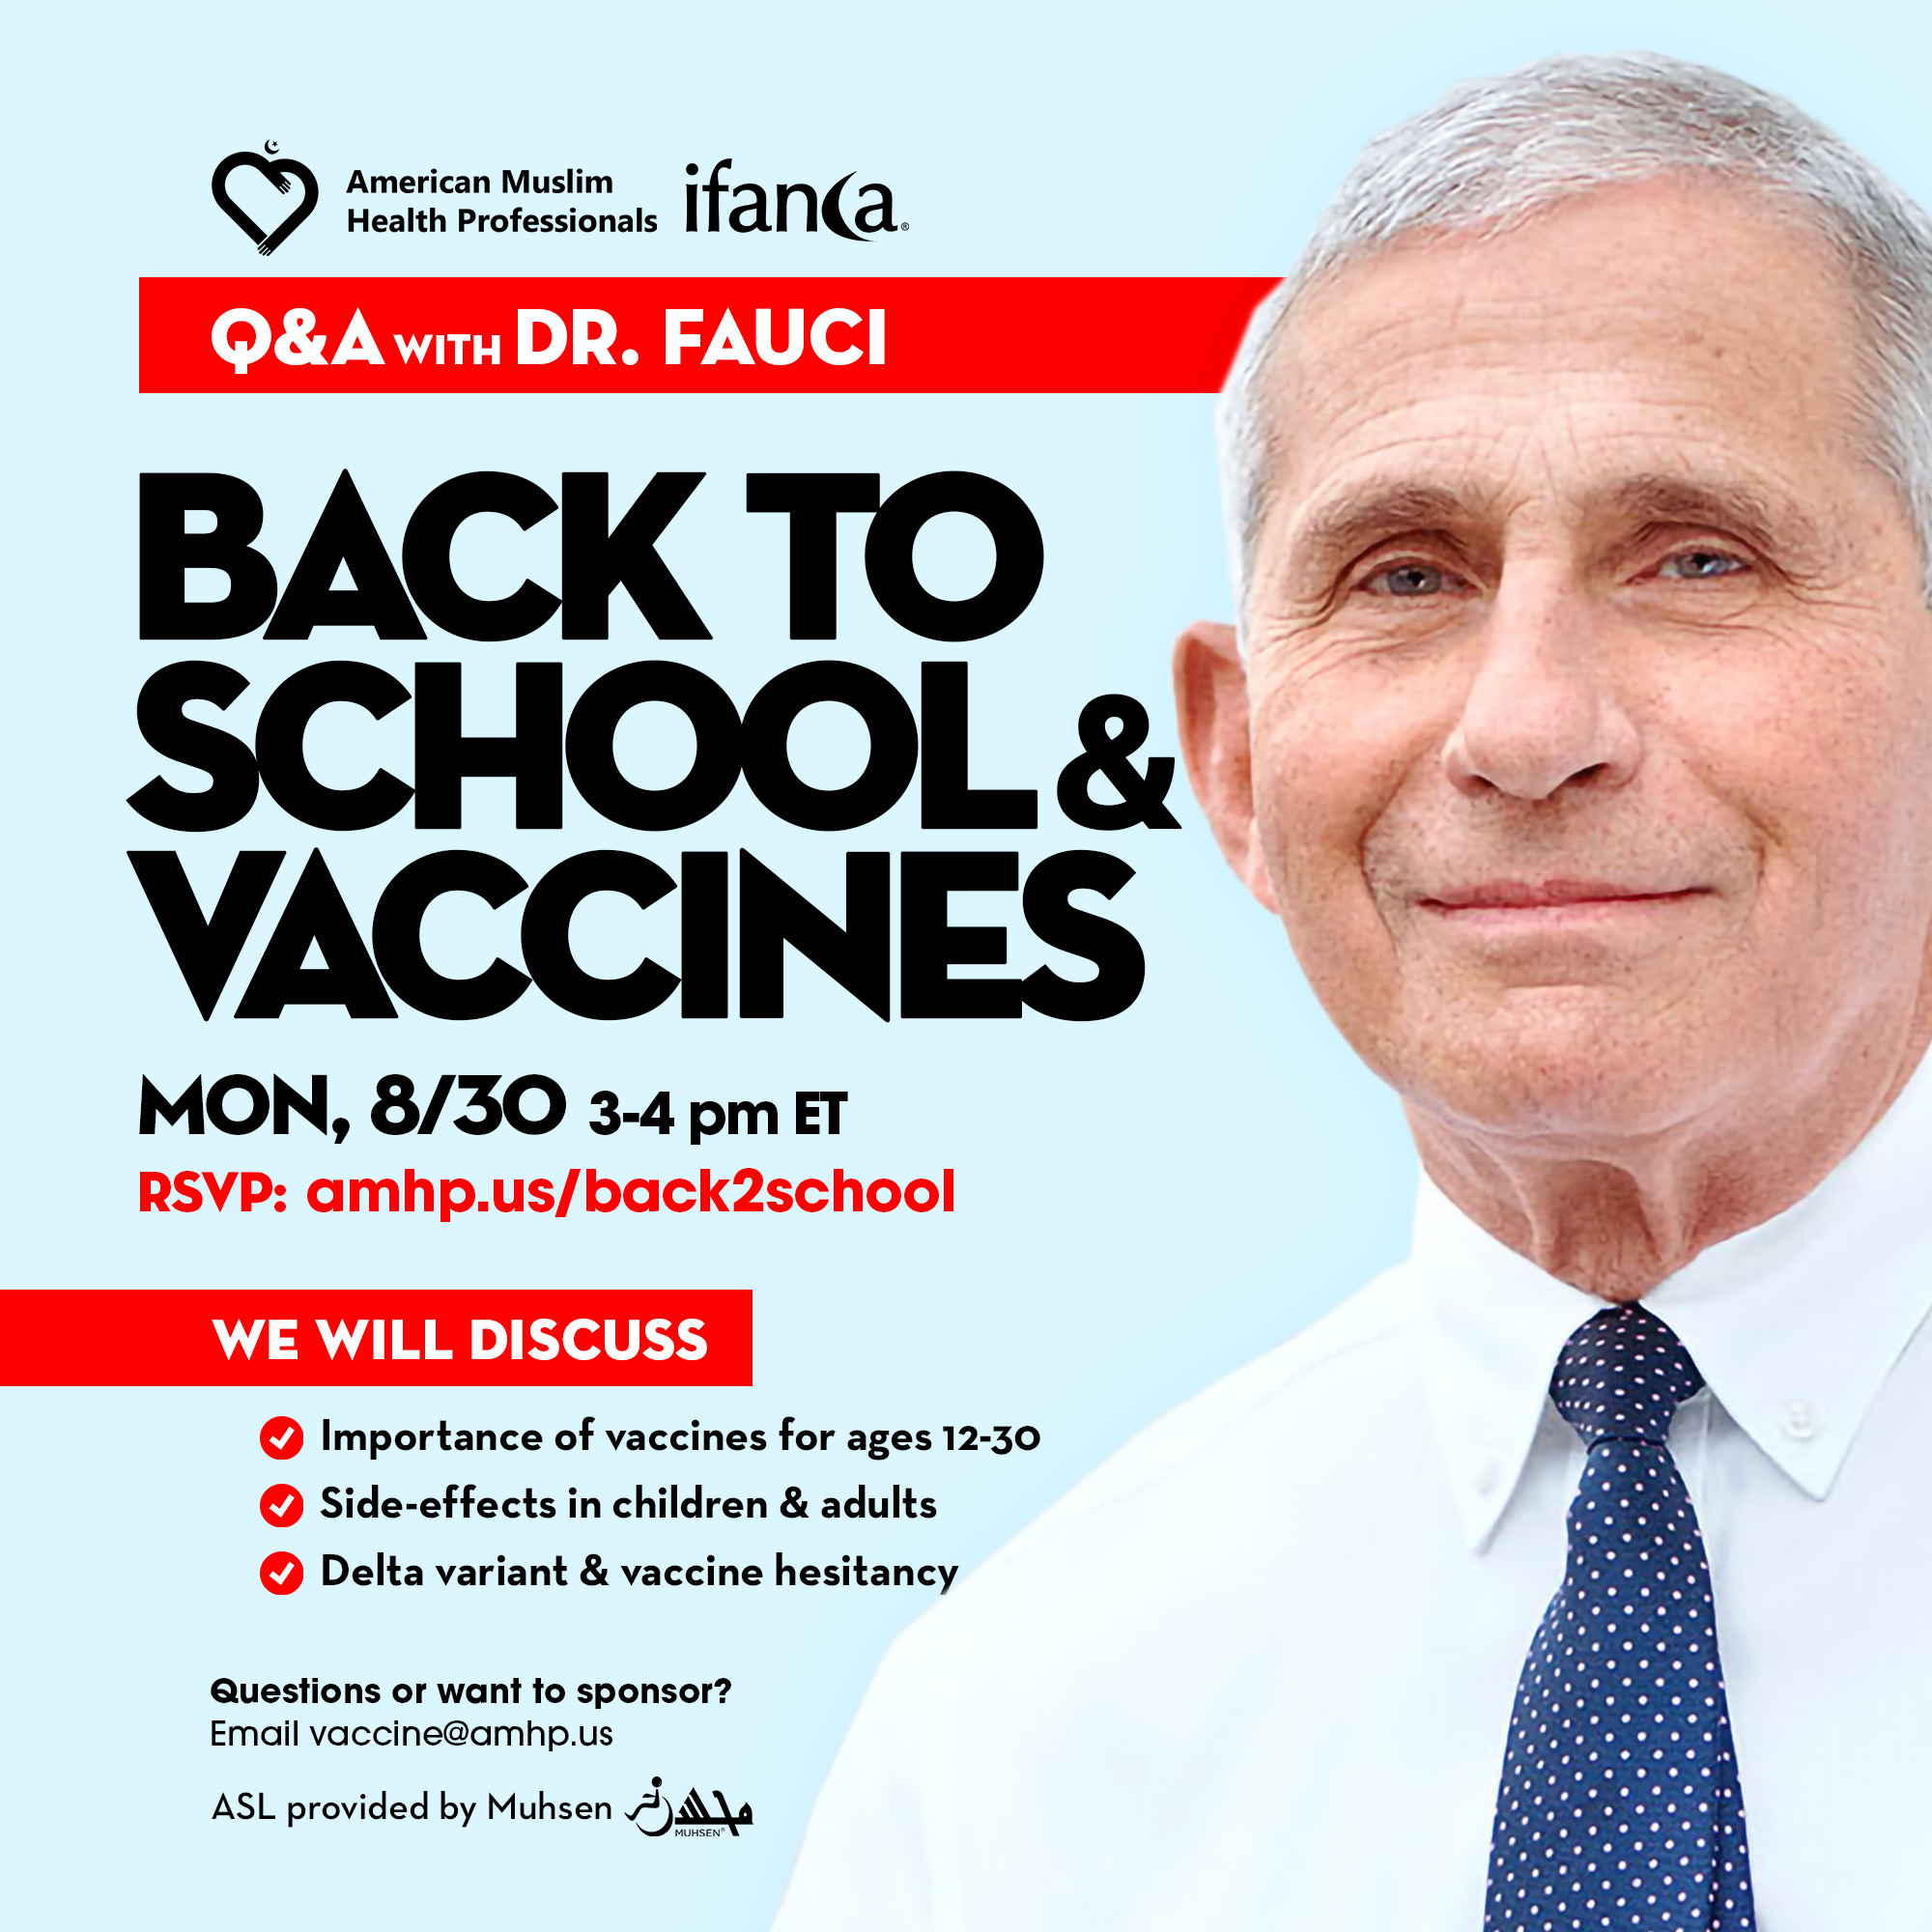 This image contains a picture of Dr. Anthony Fauci and presents information of Back to School webinar by the Merican Muslim Health Professionals AMHP and IFANCA